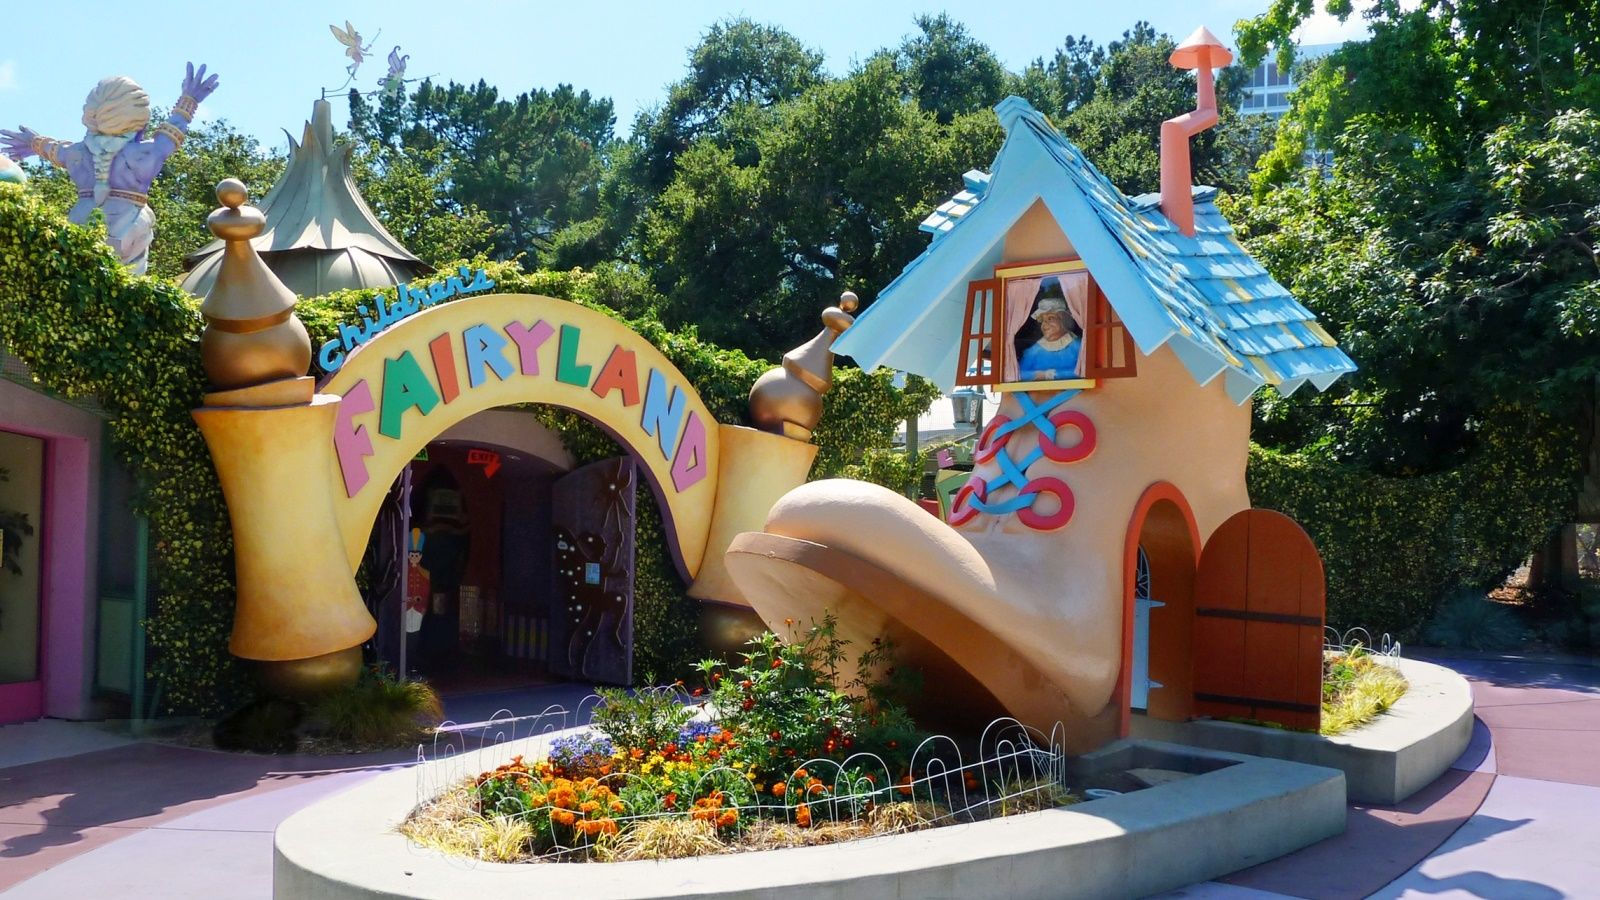 Things to do in Oakland - Children's Fairyland